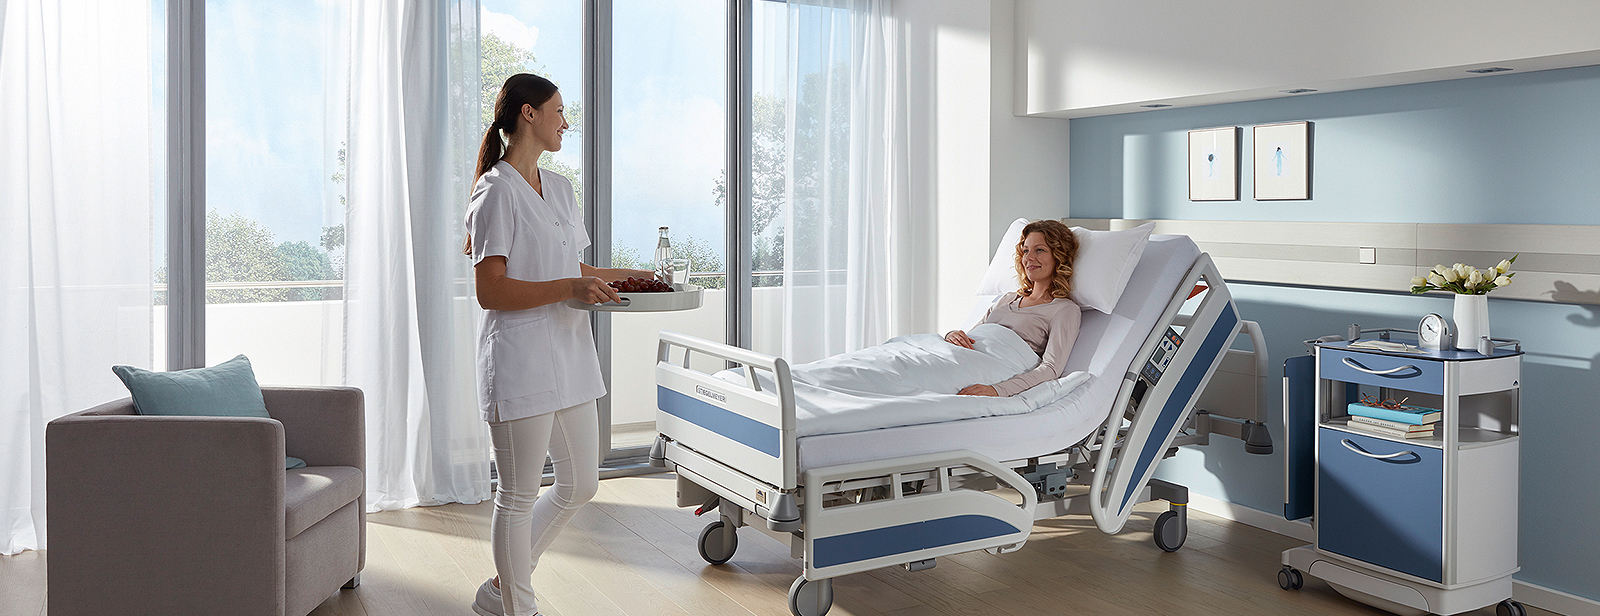 Hospital Beds For Home Top Brands And Buying Guide For 2019